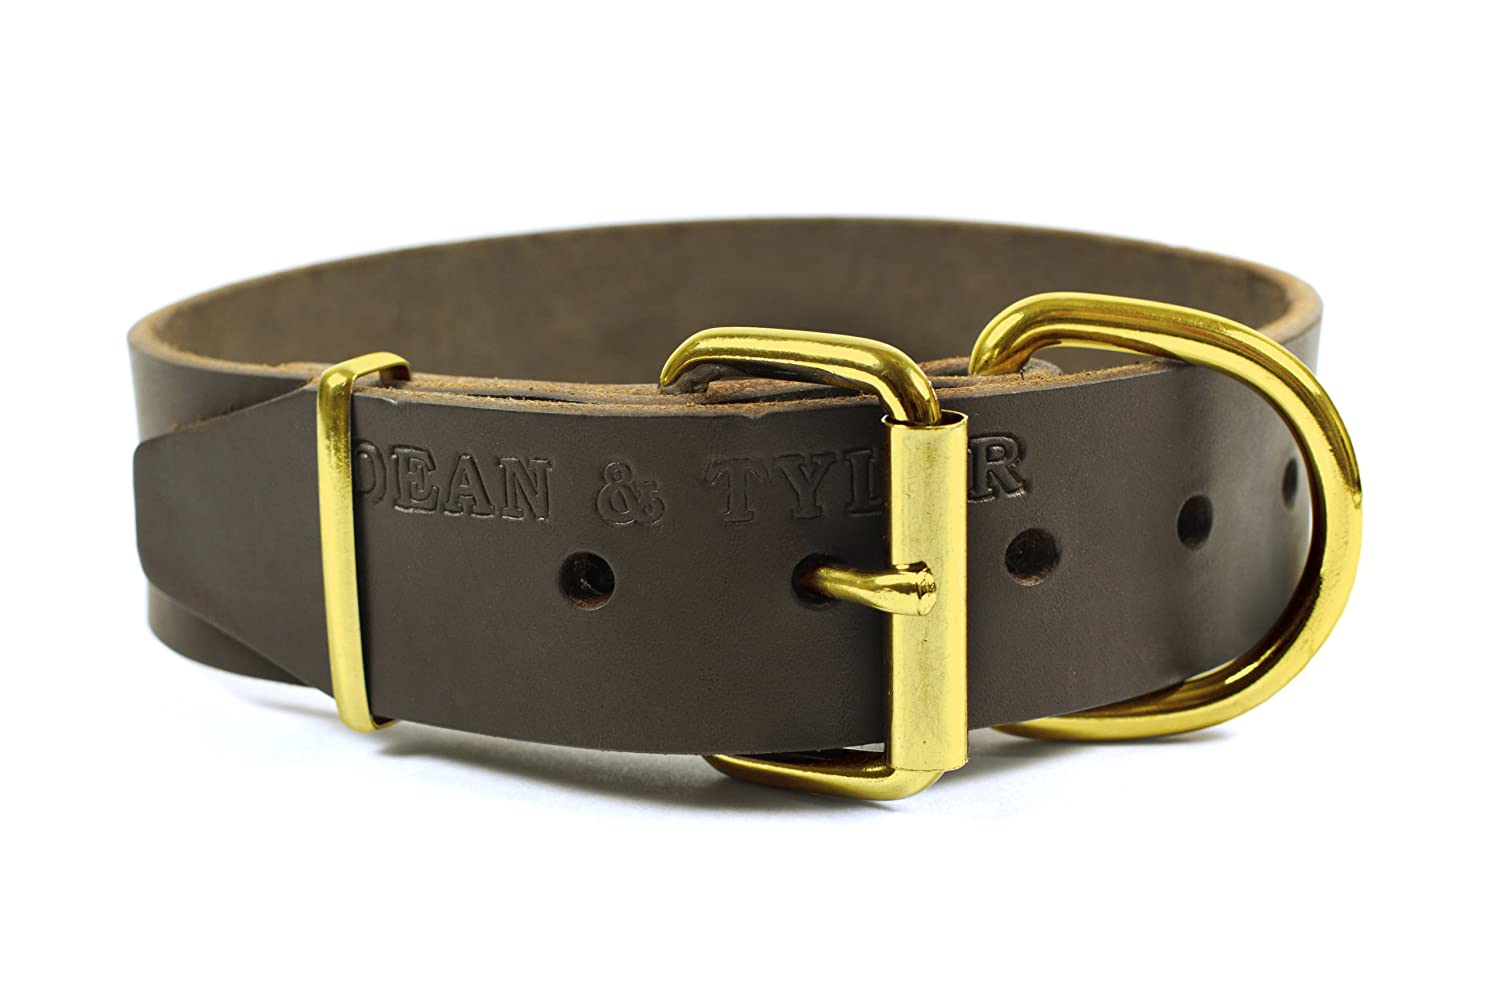 Dean & Tyler Bumps and Bits Brass Leather Dog Collar, 40 by 2-Inch, Brown